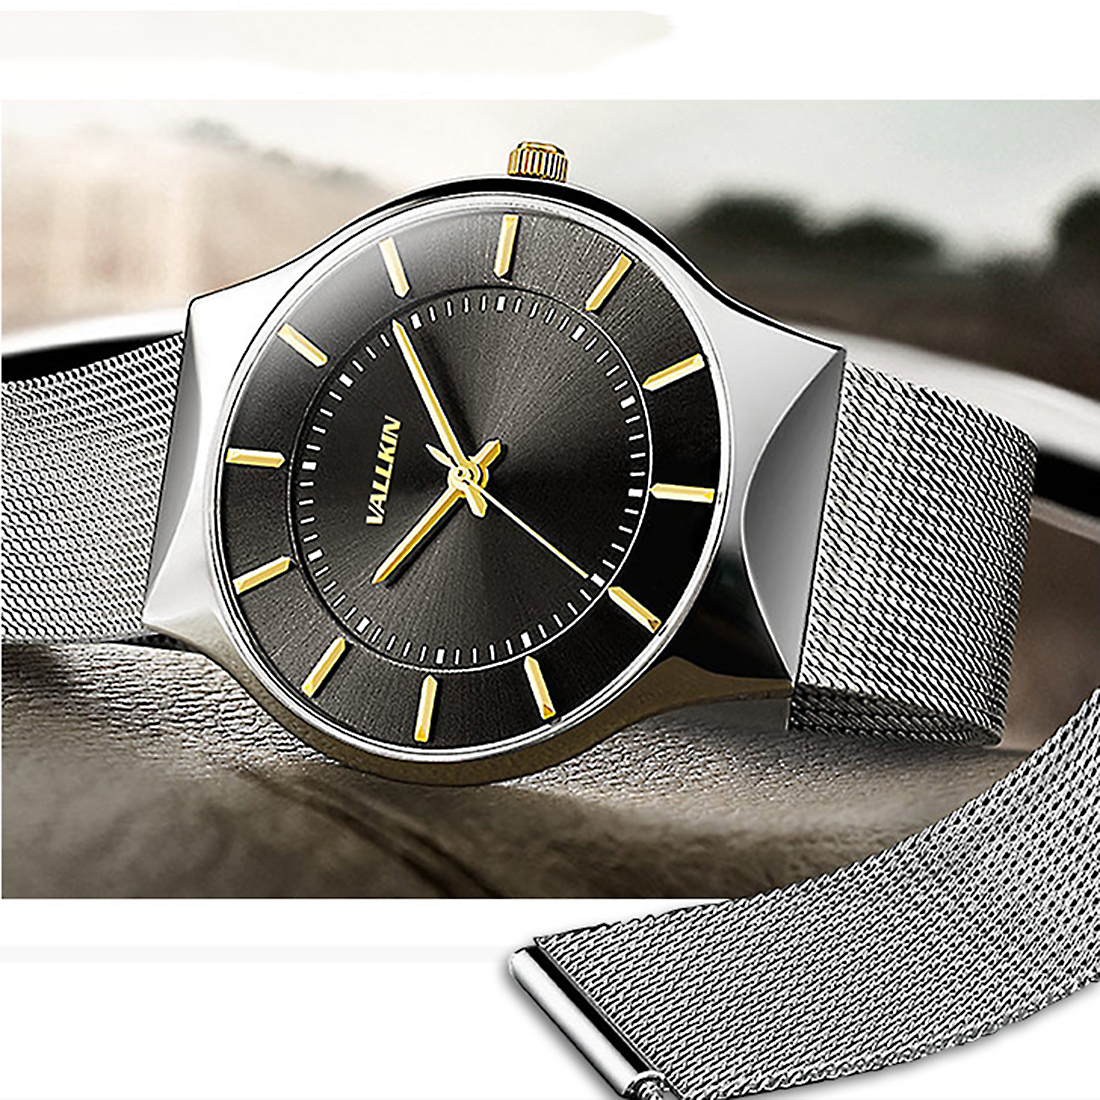 Men Wrist Watch Elegant Stainless Steel quartz dial mesh strap adjustable Men's large watches luxury wristwatches 2018 silver adjustable wrist and forearm splint external fixed support wrist brace fixing orthosisfit for men and women